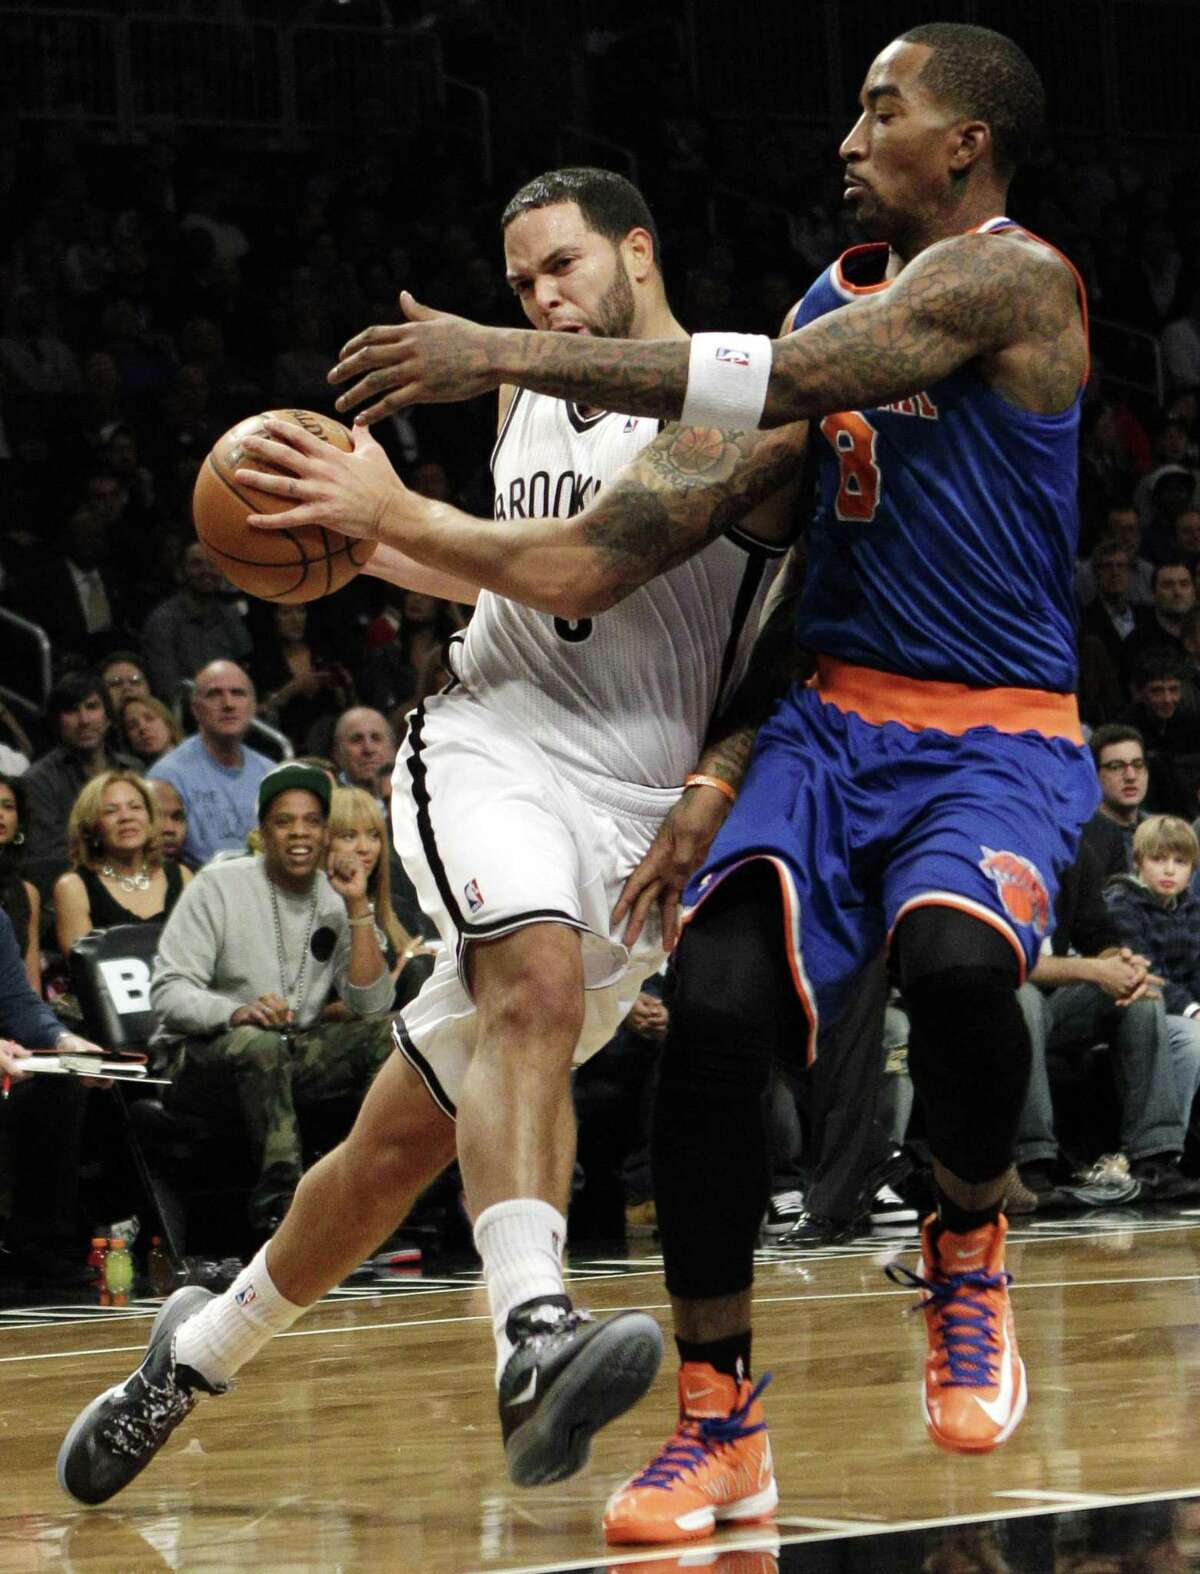 Brooklyn Nets guard Deron Williams attempts to drive around New York Knicks guard J.R. Smith. By The Associated Press